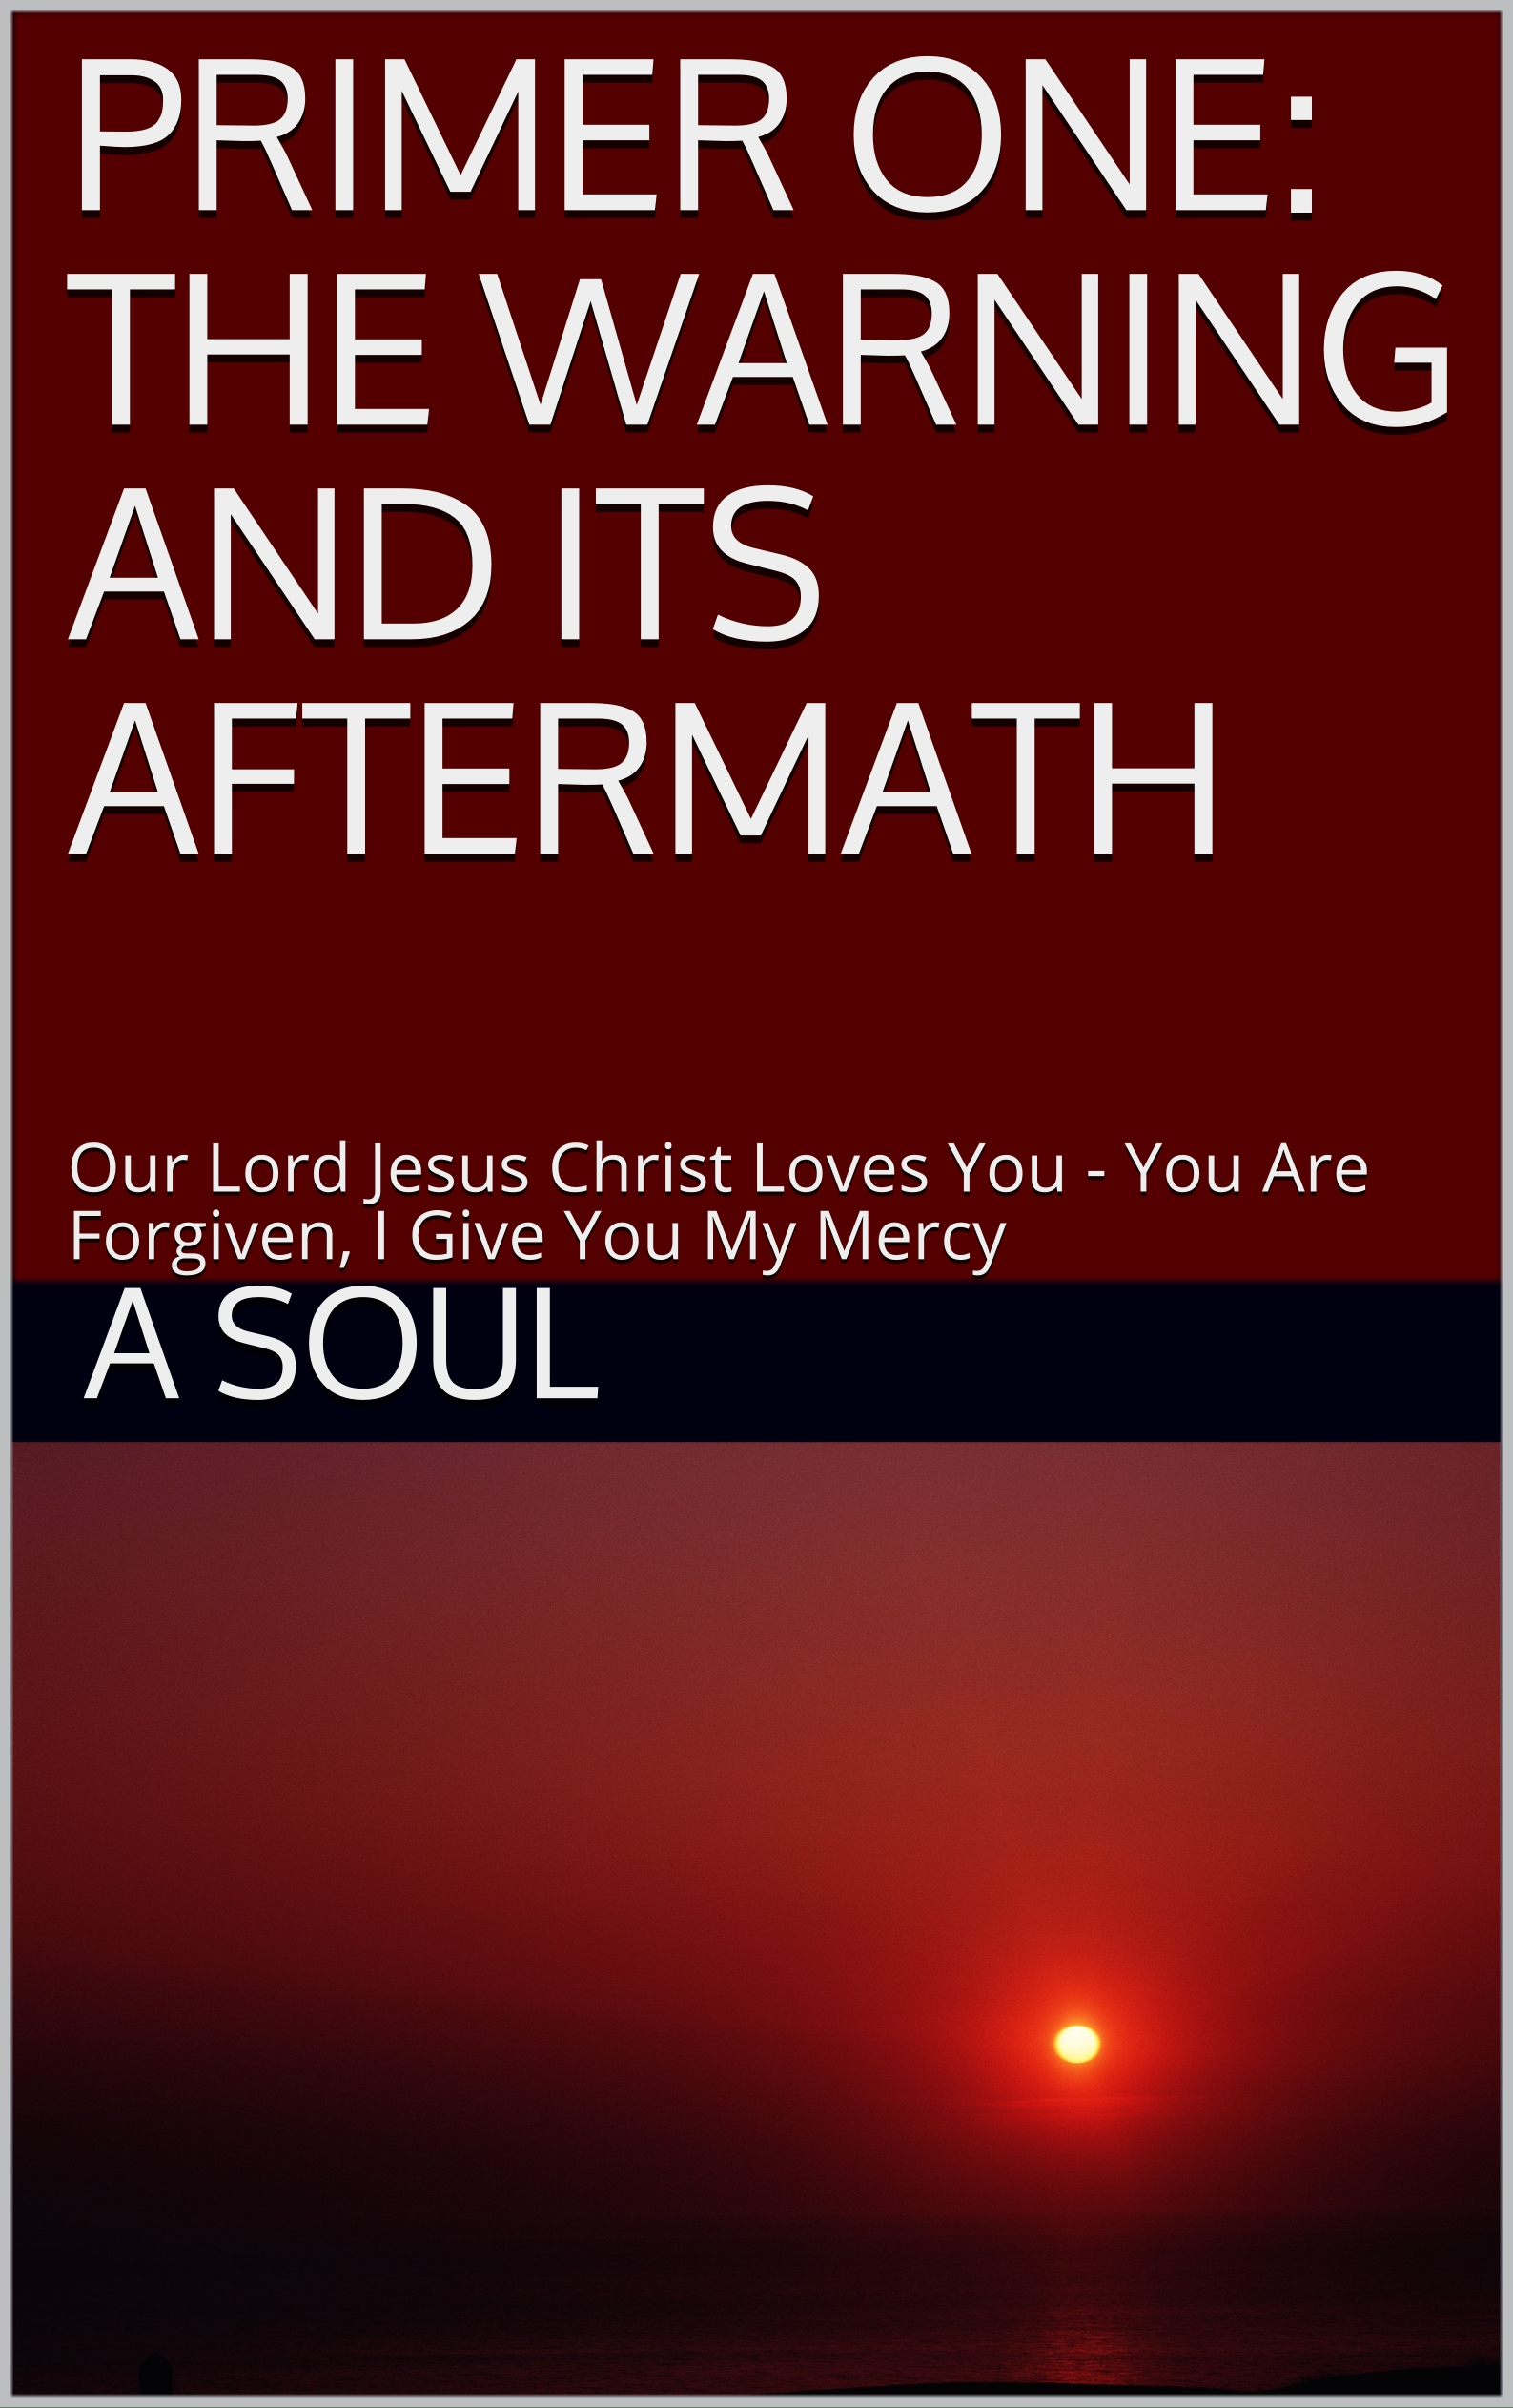 Free primer ebooks mary refuge of holy love httpsmaryrefugeofholylovefree primer ebooksfree ebook primer one the warning and its aftermath our lord jesus christ loves you you are forgiven i fandeluxe Image collections